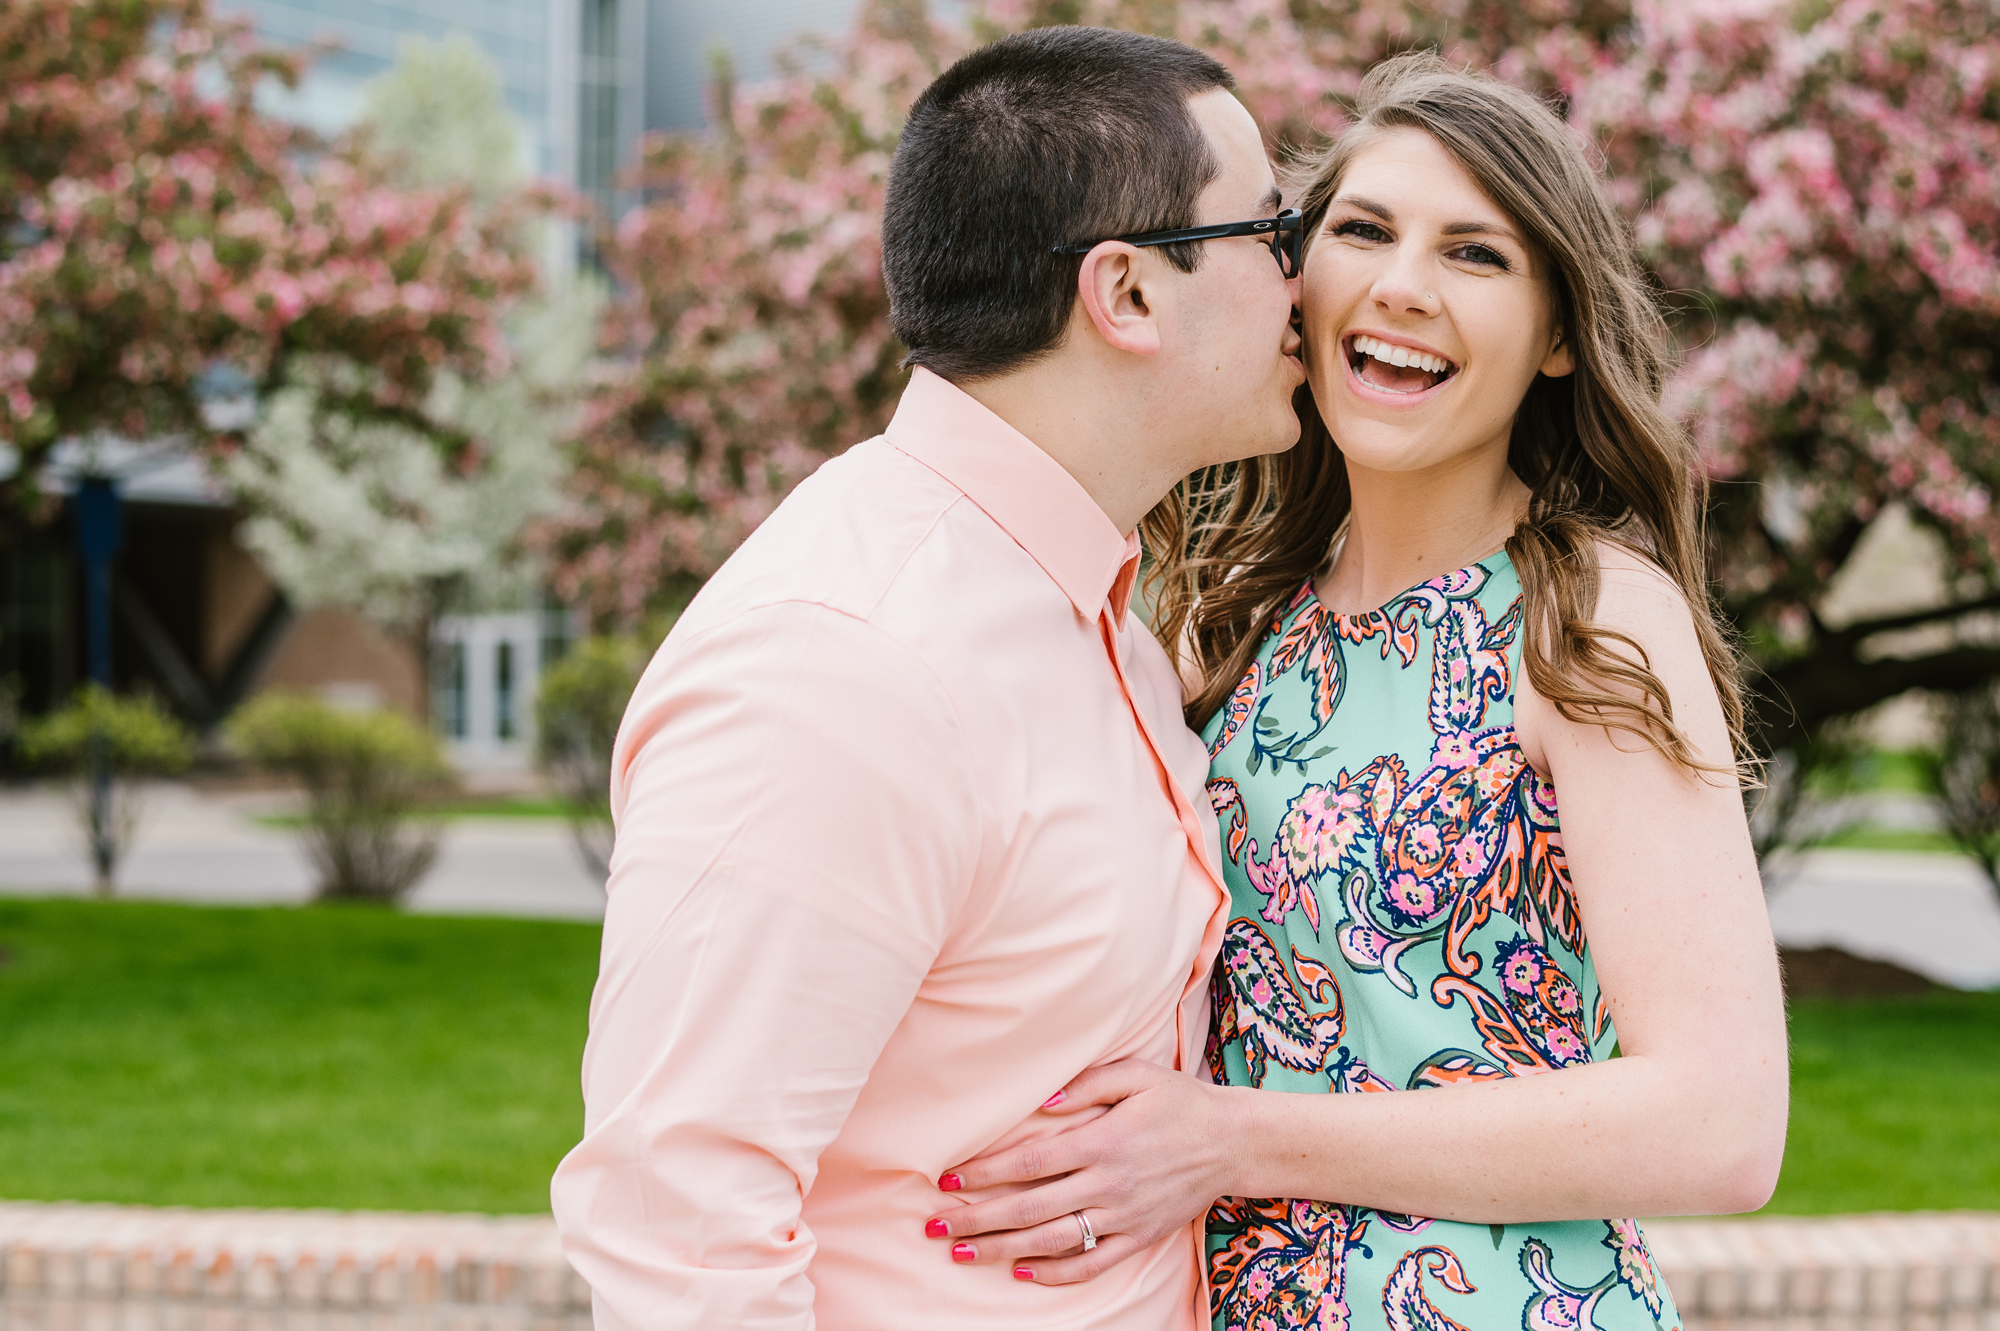 grand-rapids-downtown-spring-engagement-session (21).jpg